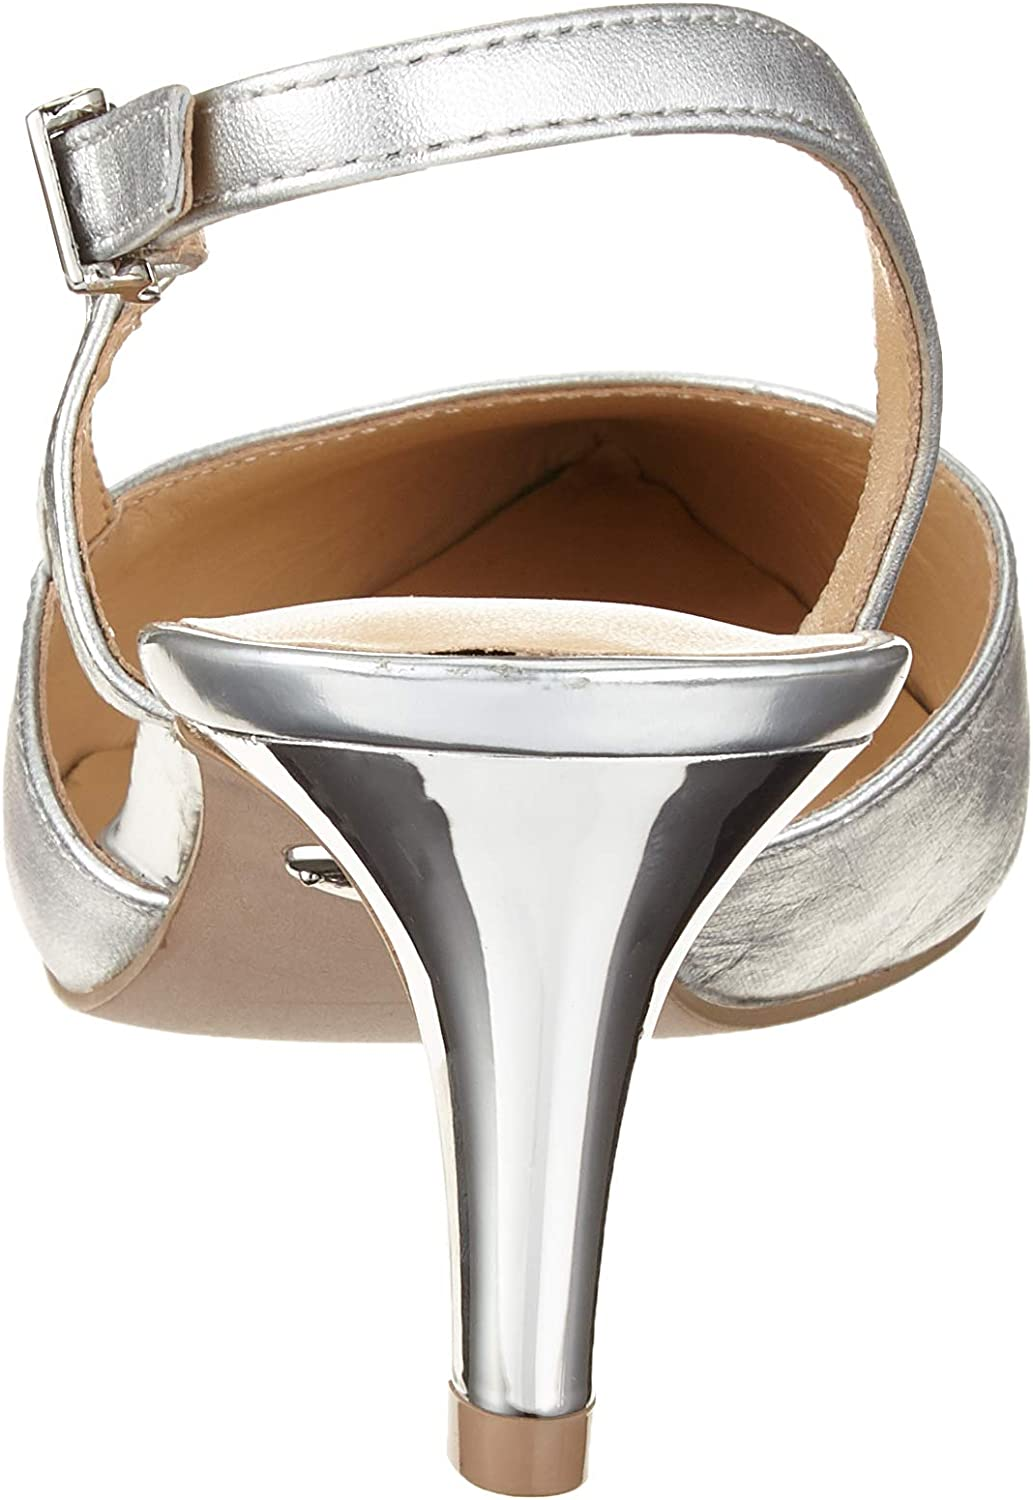 CAPRICE Gillian Slingback Pumps voor dames Multicolour Silver Satin 966